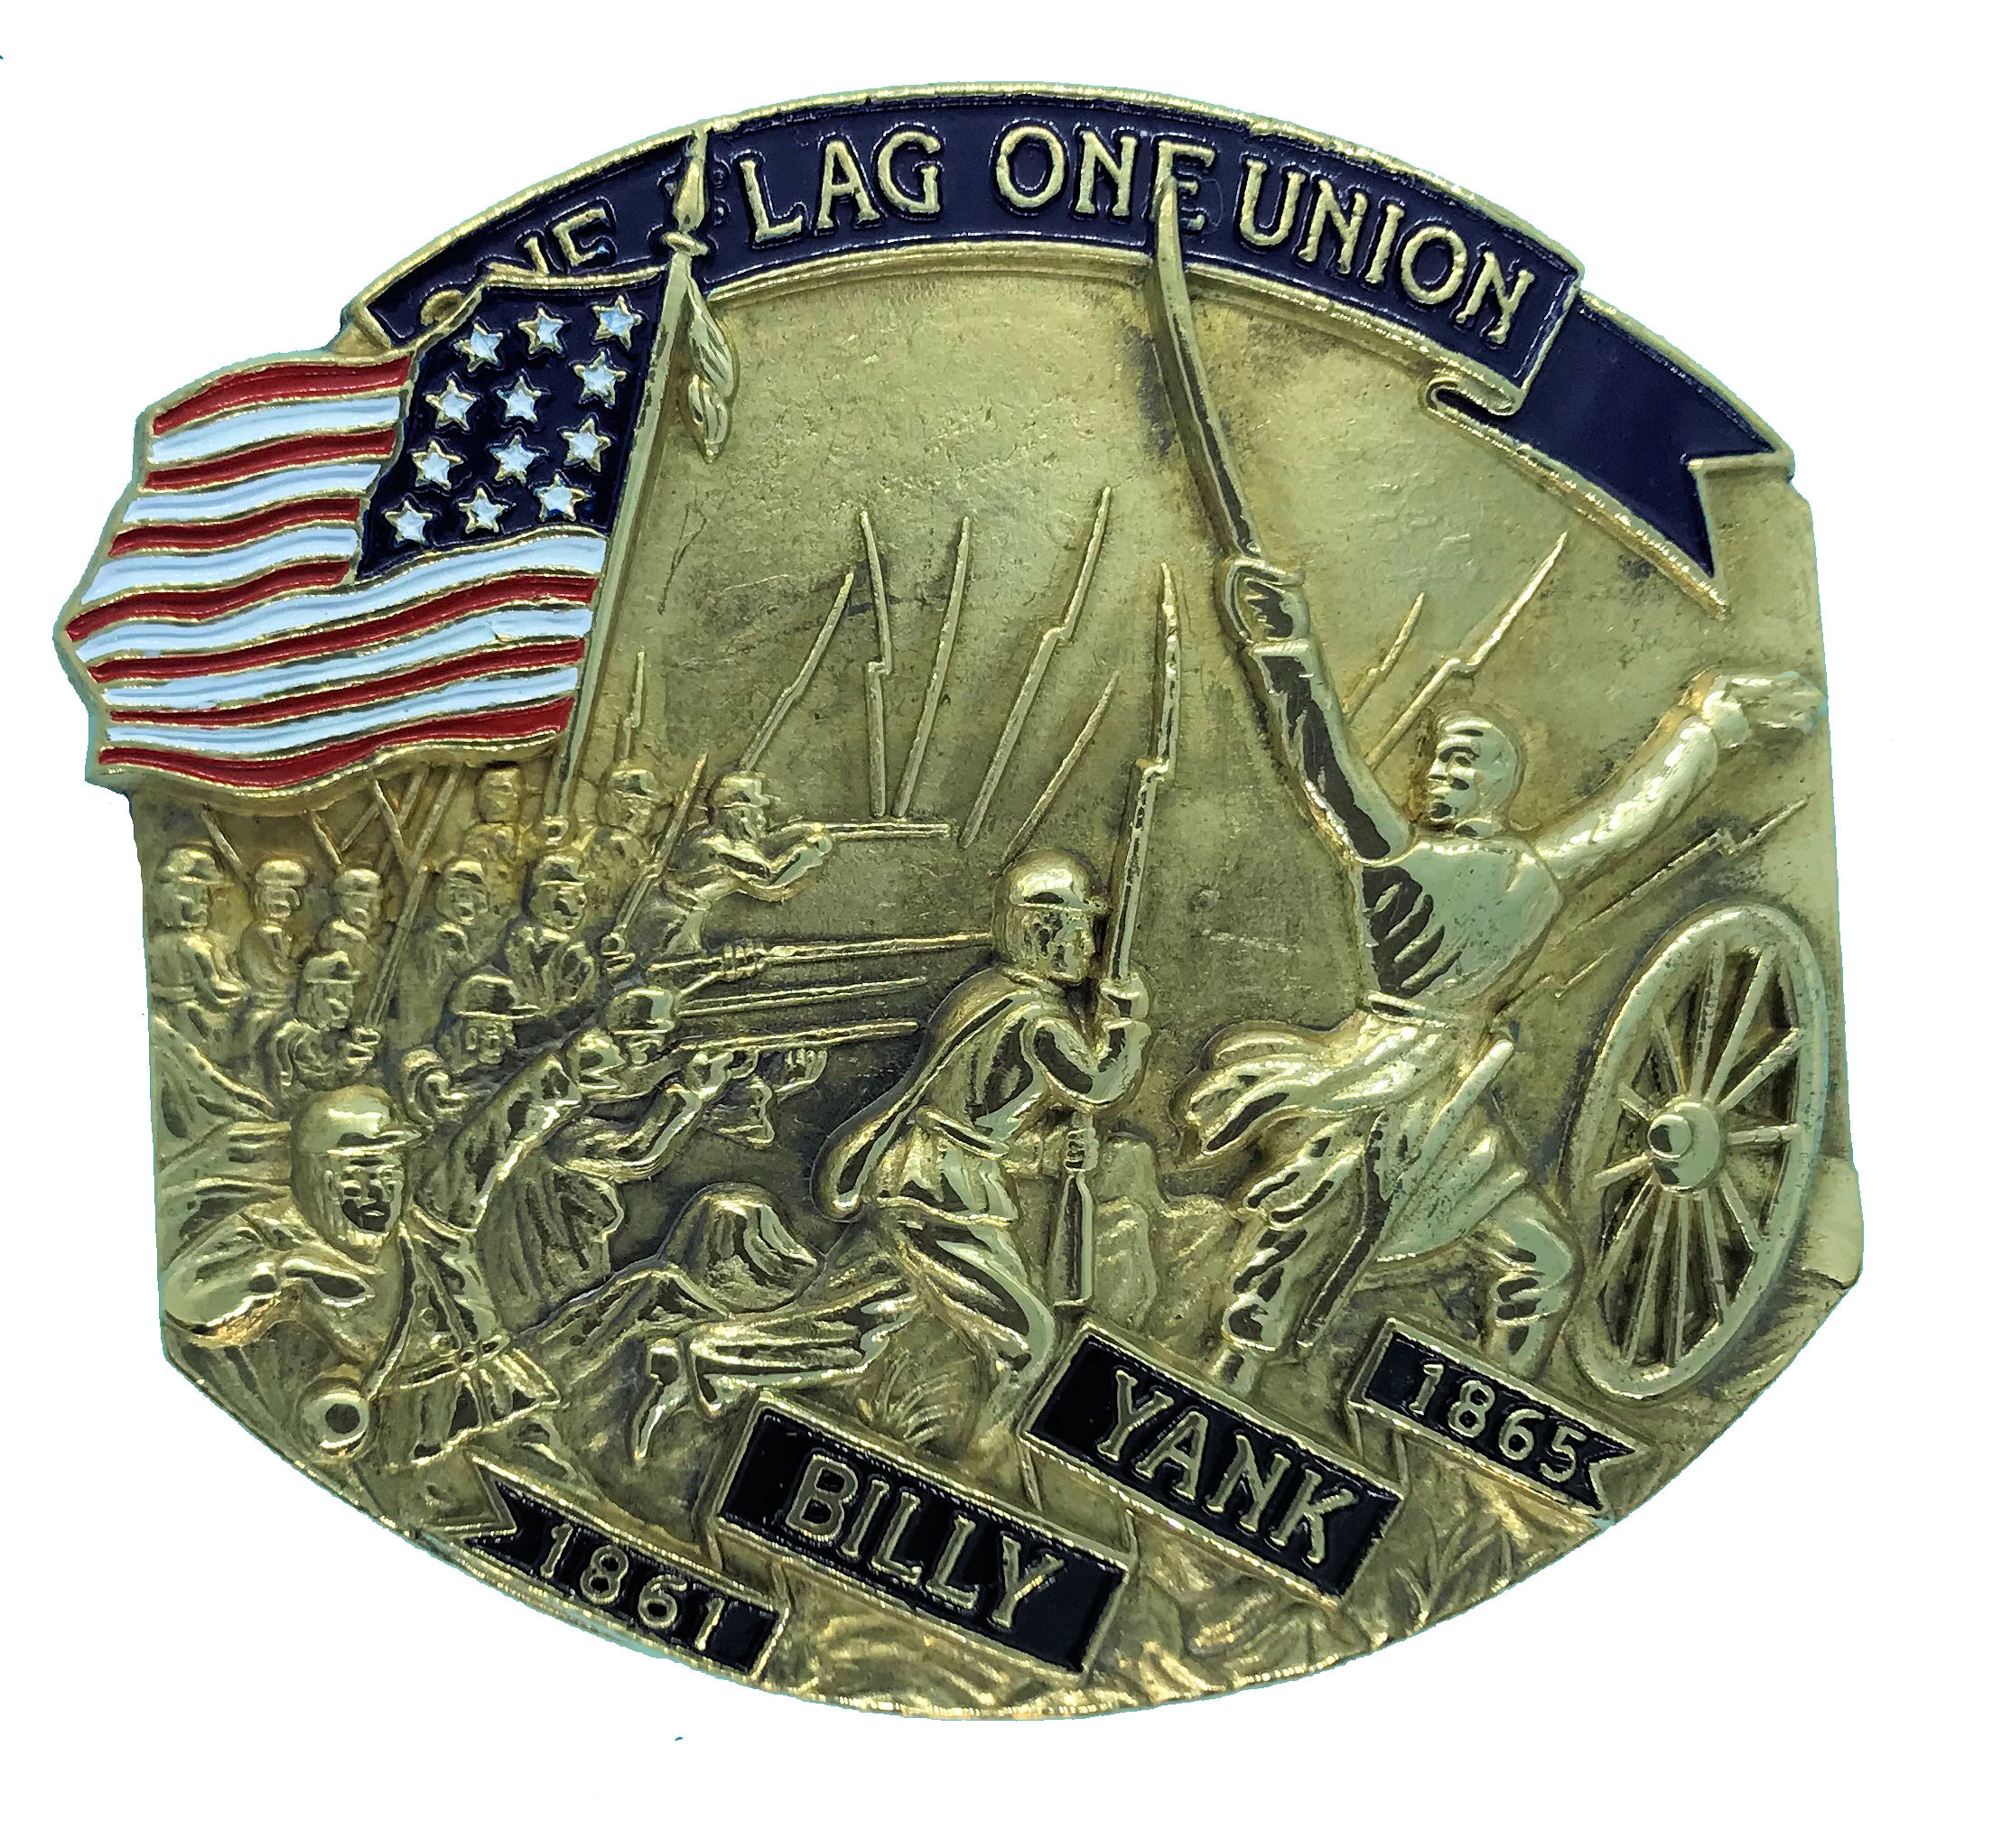 Billy Yank (union) Belt Buckle